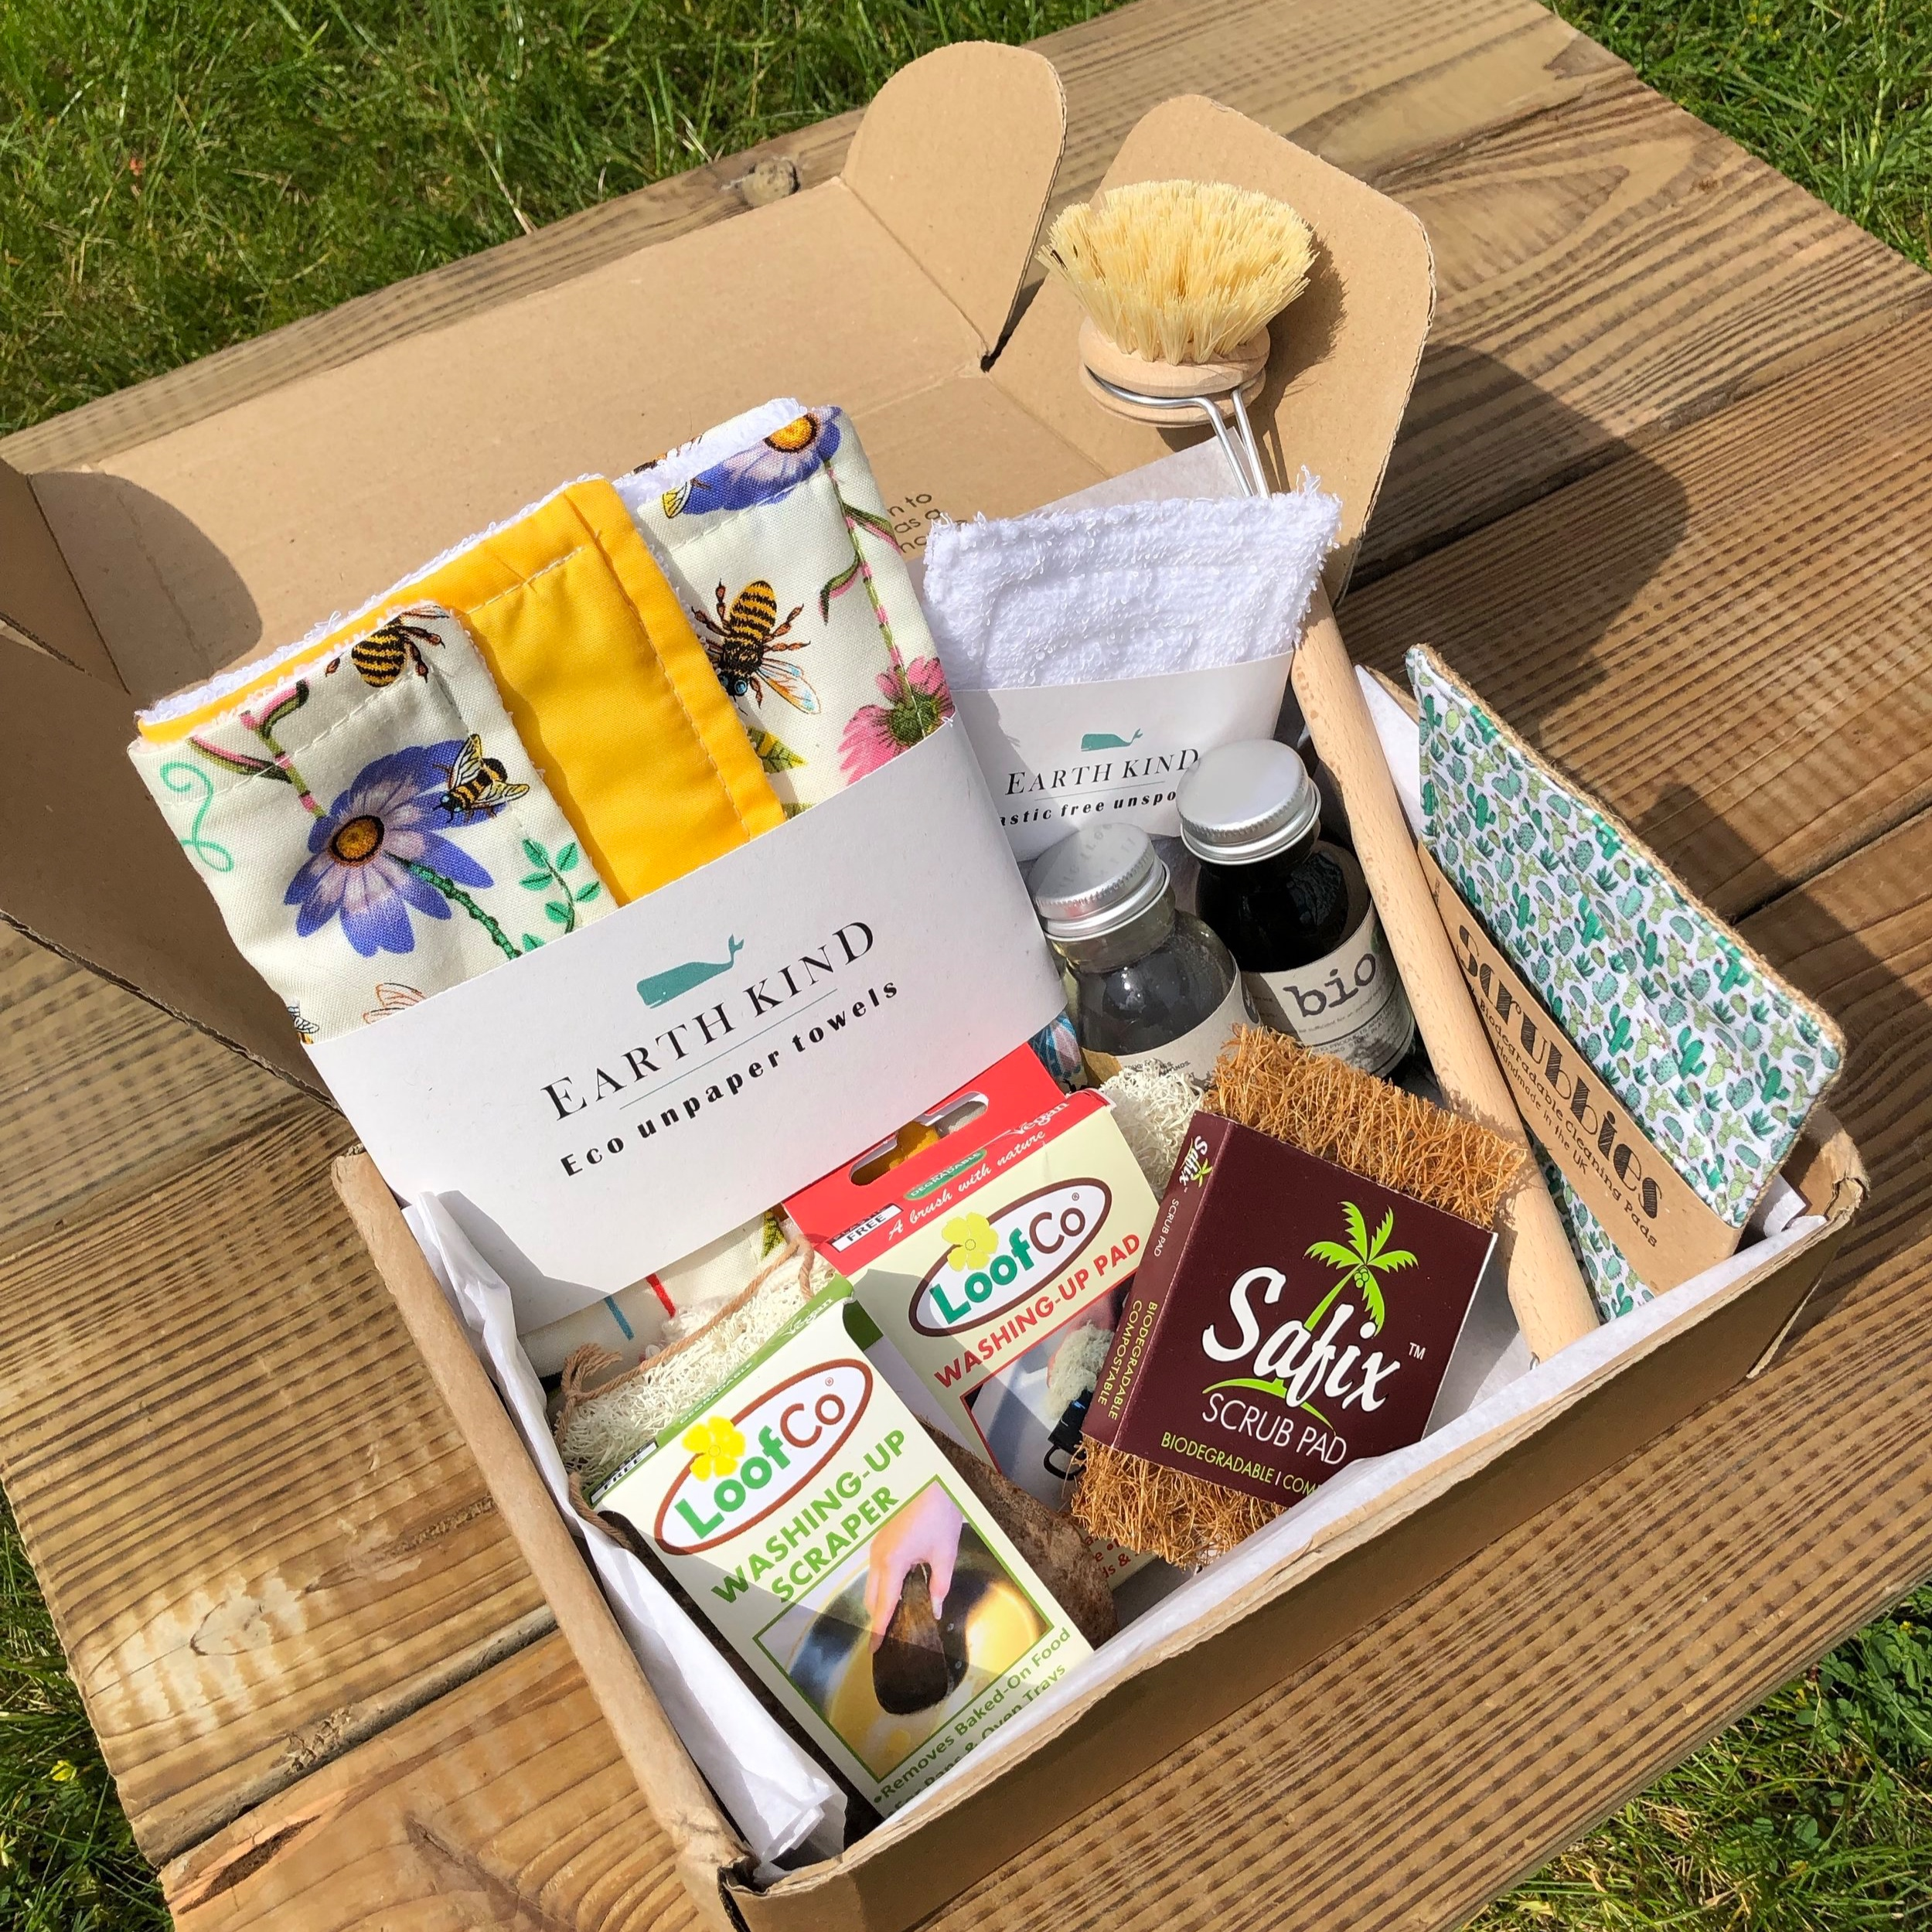 Purchase a past box - We will release any extra boxes we don't send to our lovely subscribers here for anyone to purchase. However to ensure that you always get an EcoExciting box you should become a subscriber.